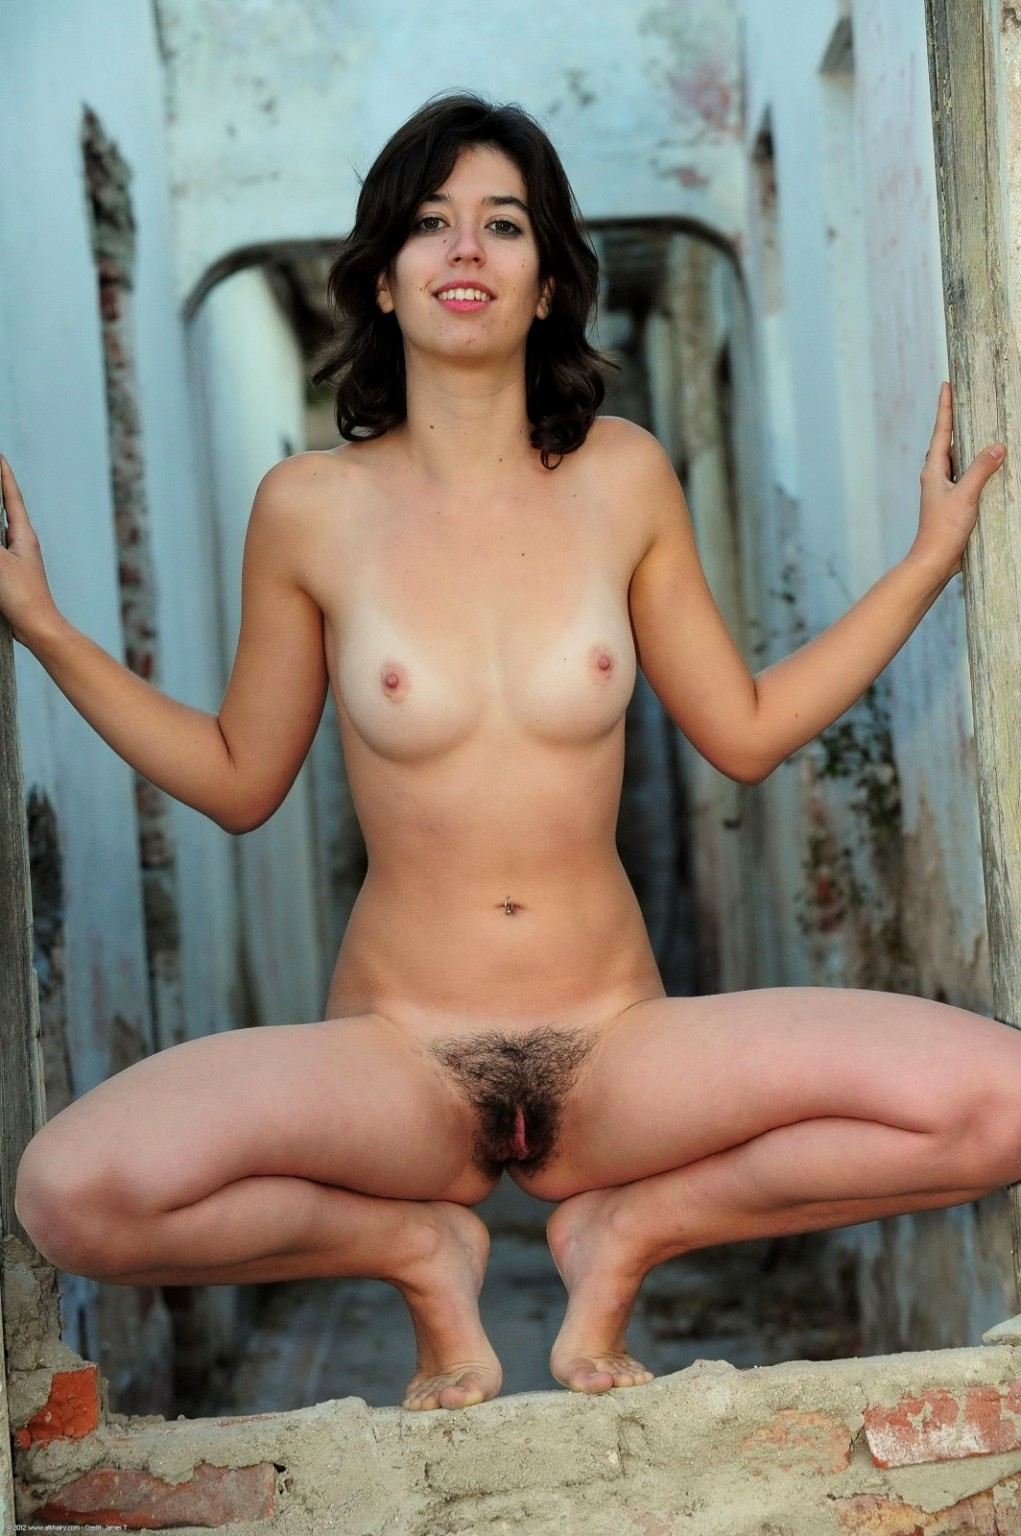 Agree, rather Hairy pussy amateur naked